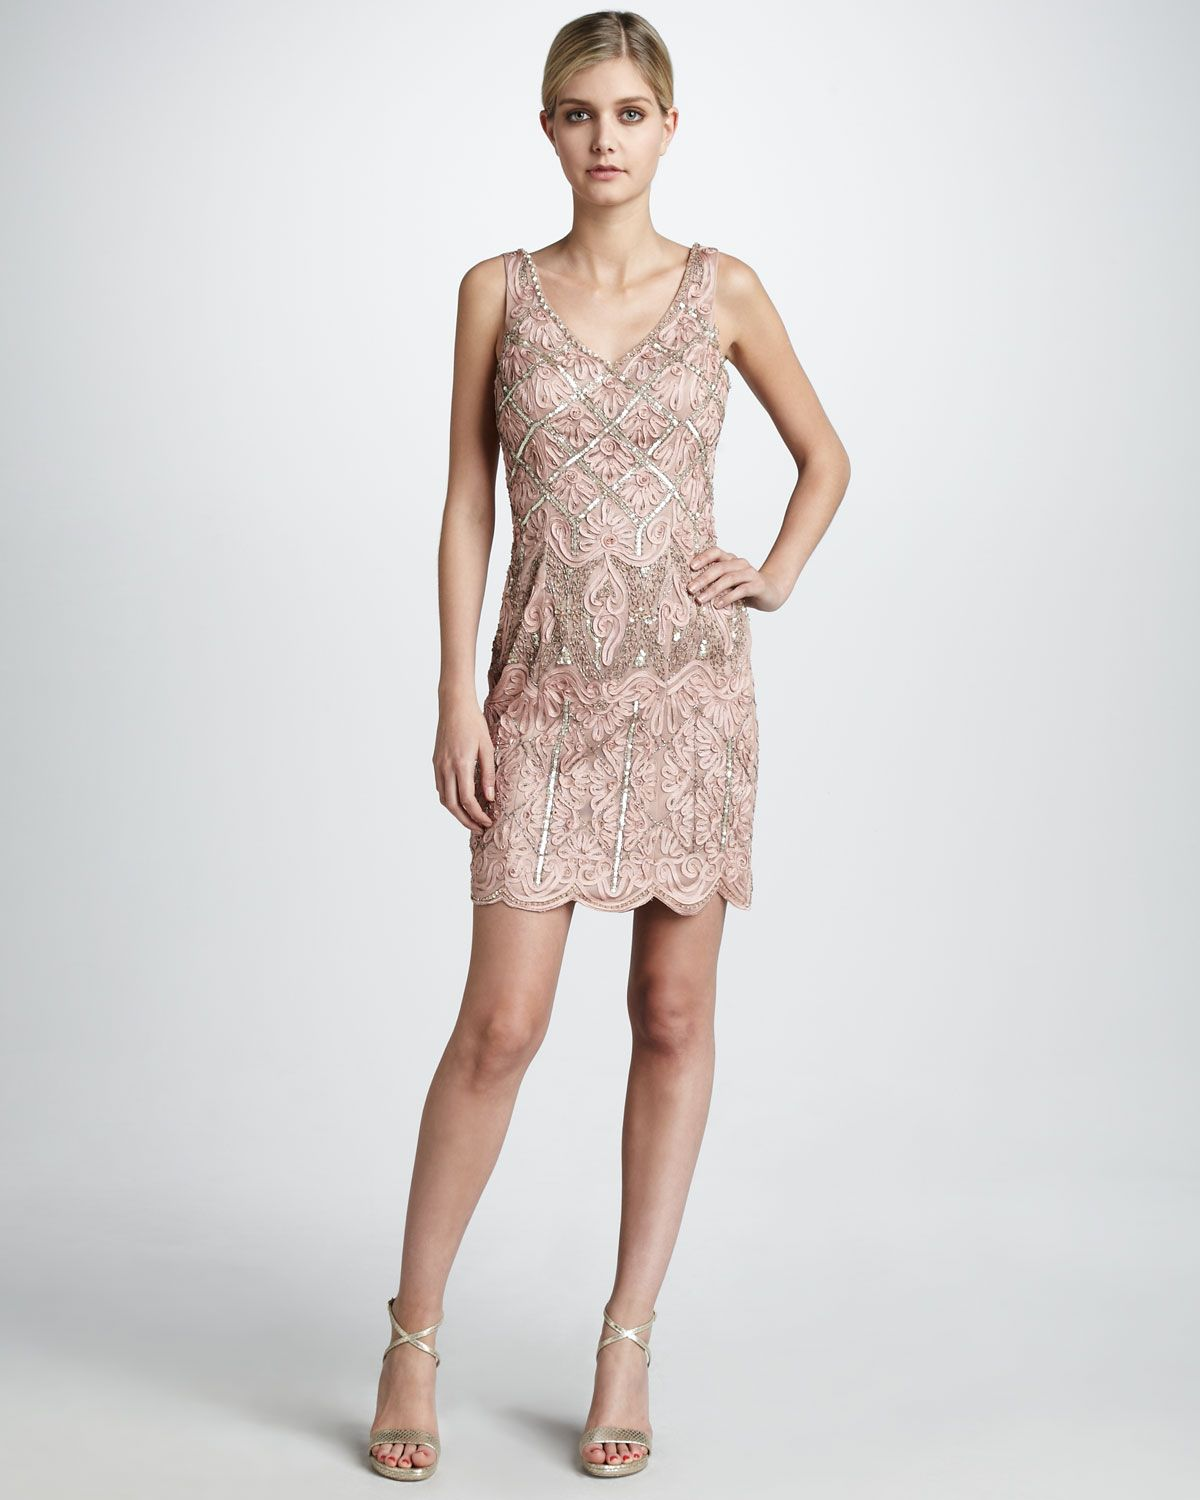 Neiman marcus dresses for weddings  MetallicBeaded Passementerie Dress  Neiman Marcus  FASHION